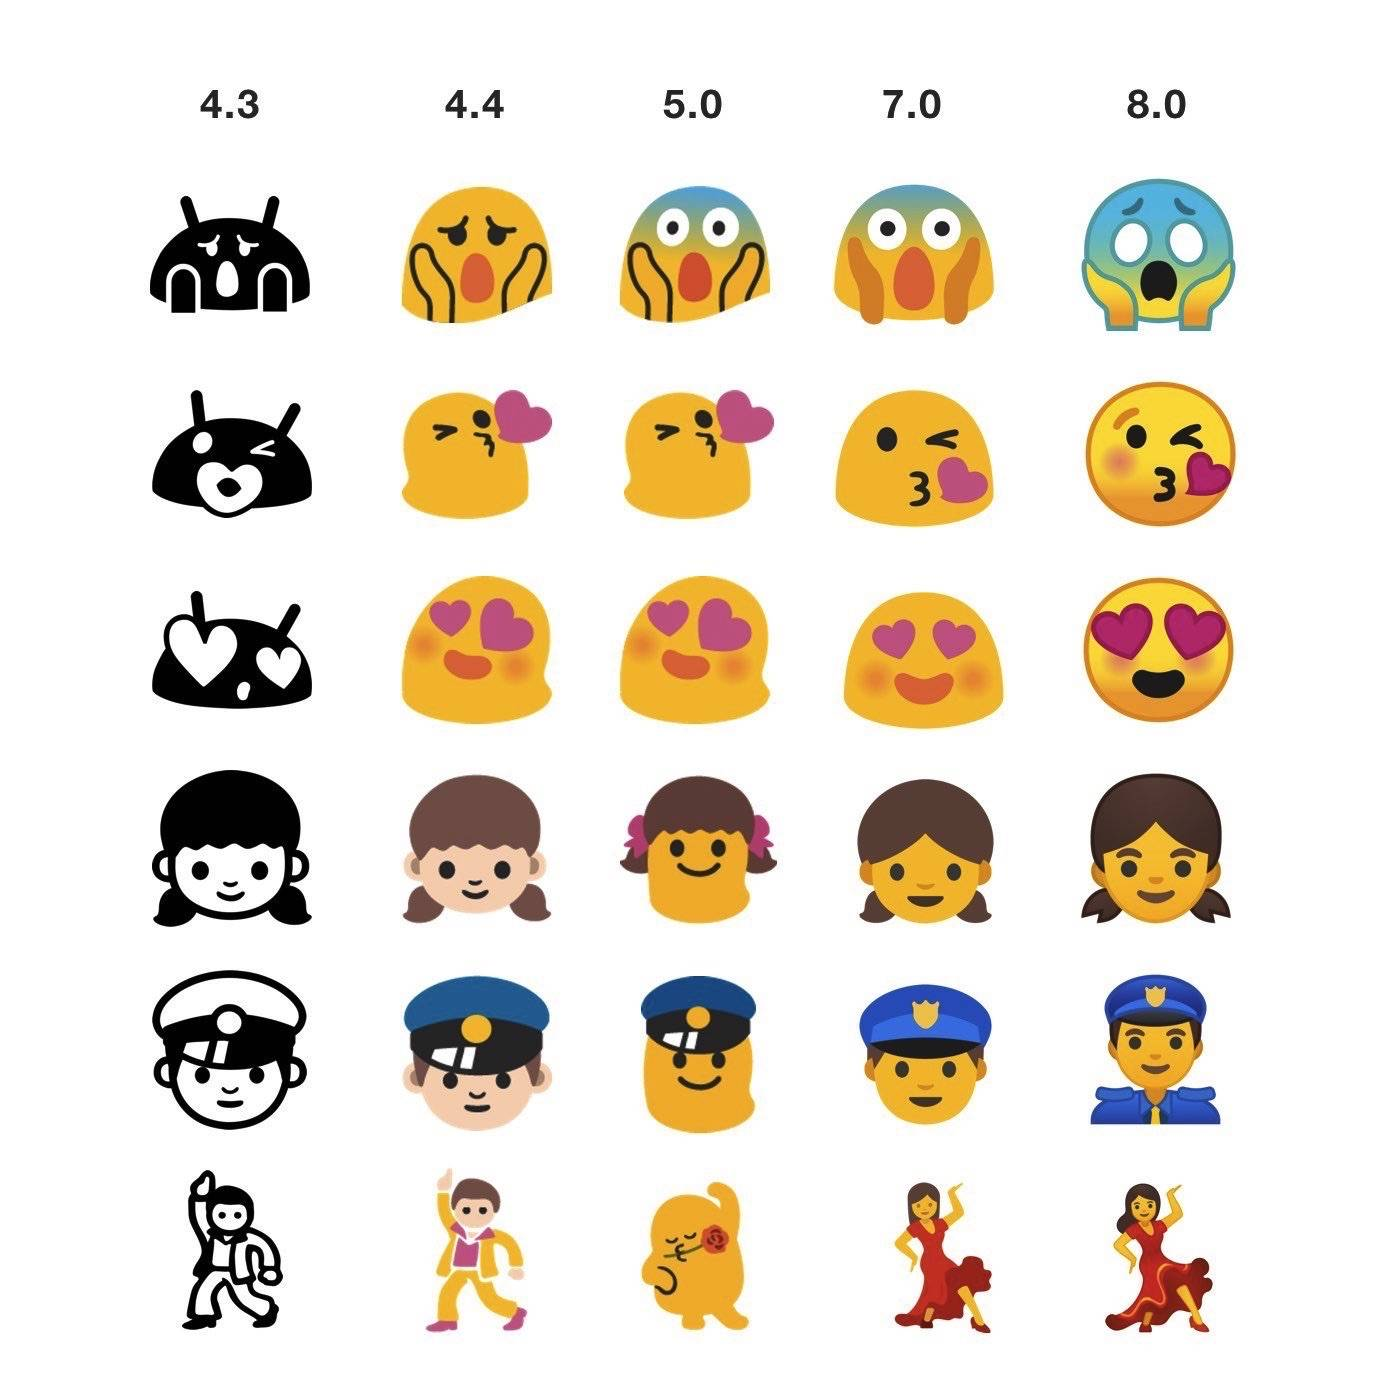 Android 8 0 gets new and additional Emojis - Android Community